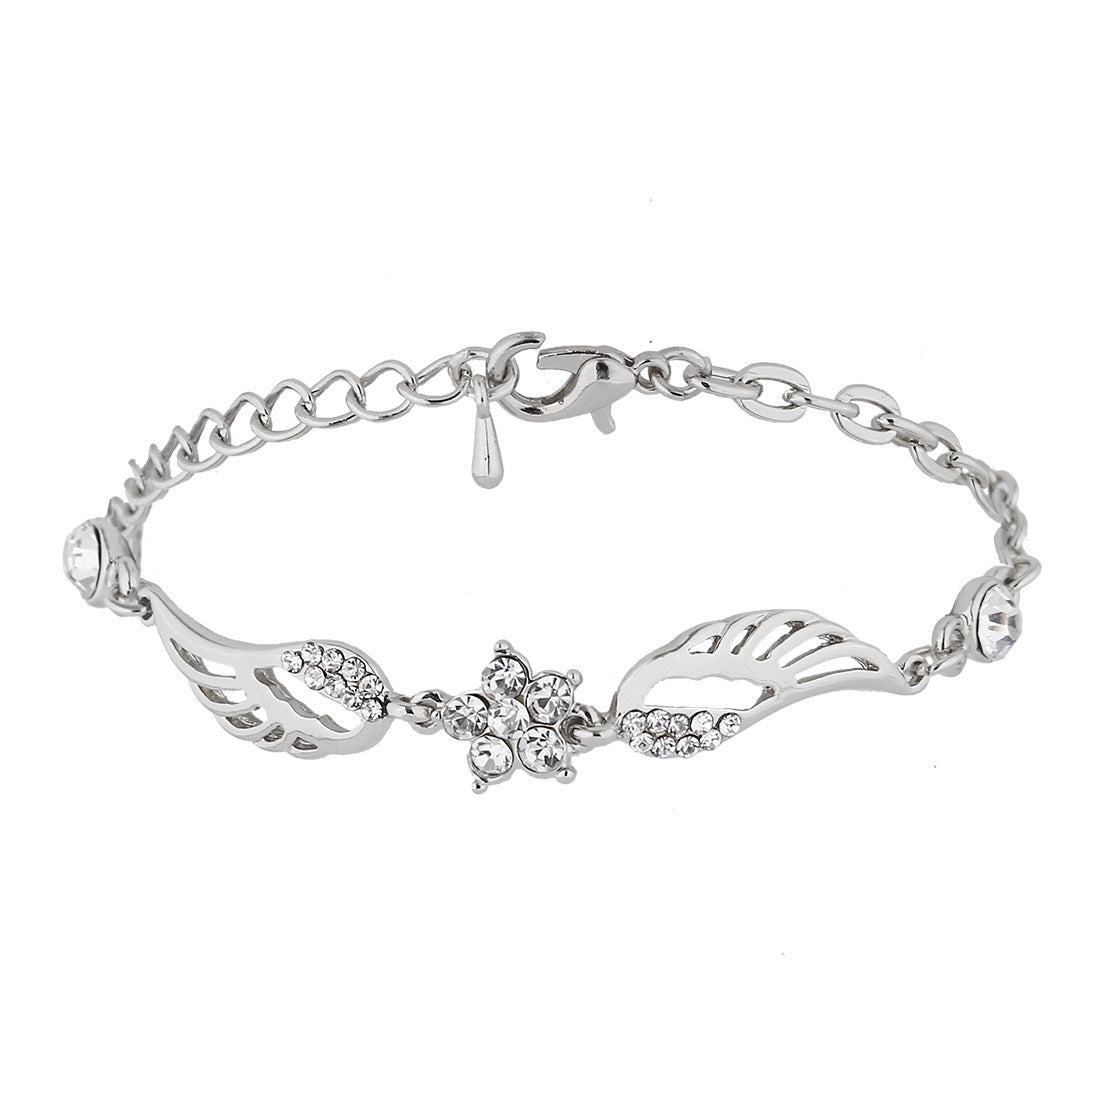 Angel Wings Star Charm Bracelet - 30% Off! - The Creative Booth